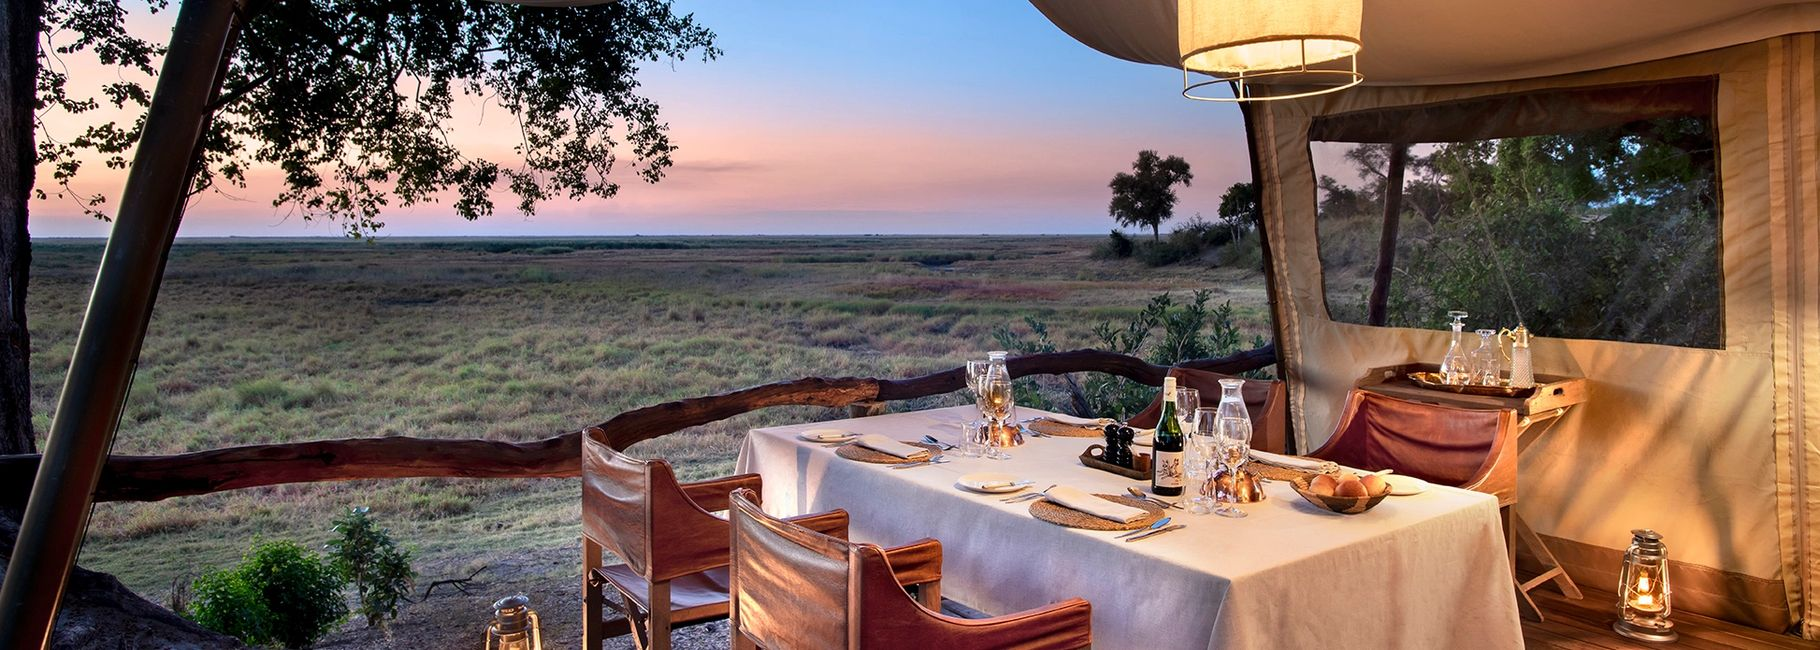 Linyanti Expeditions tented camp, Chobe Enclave, Botswana, Africa